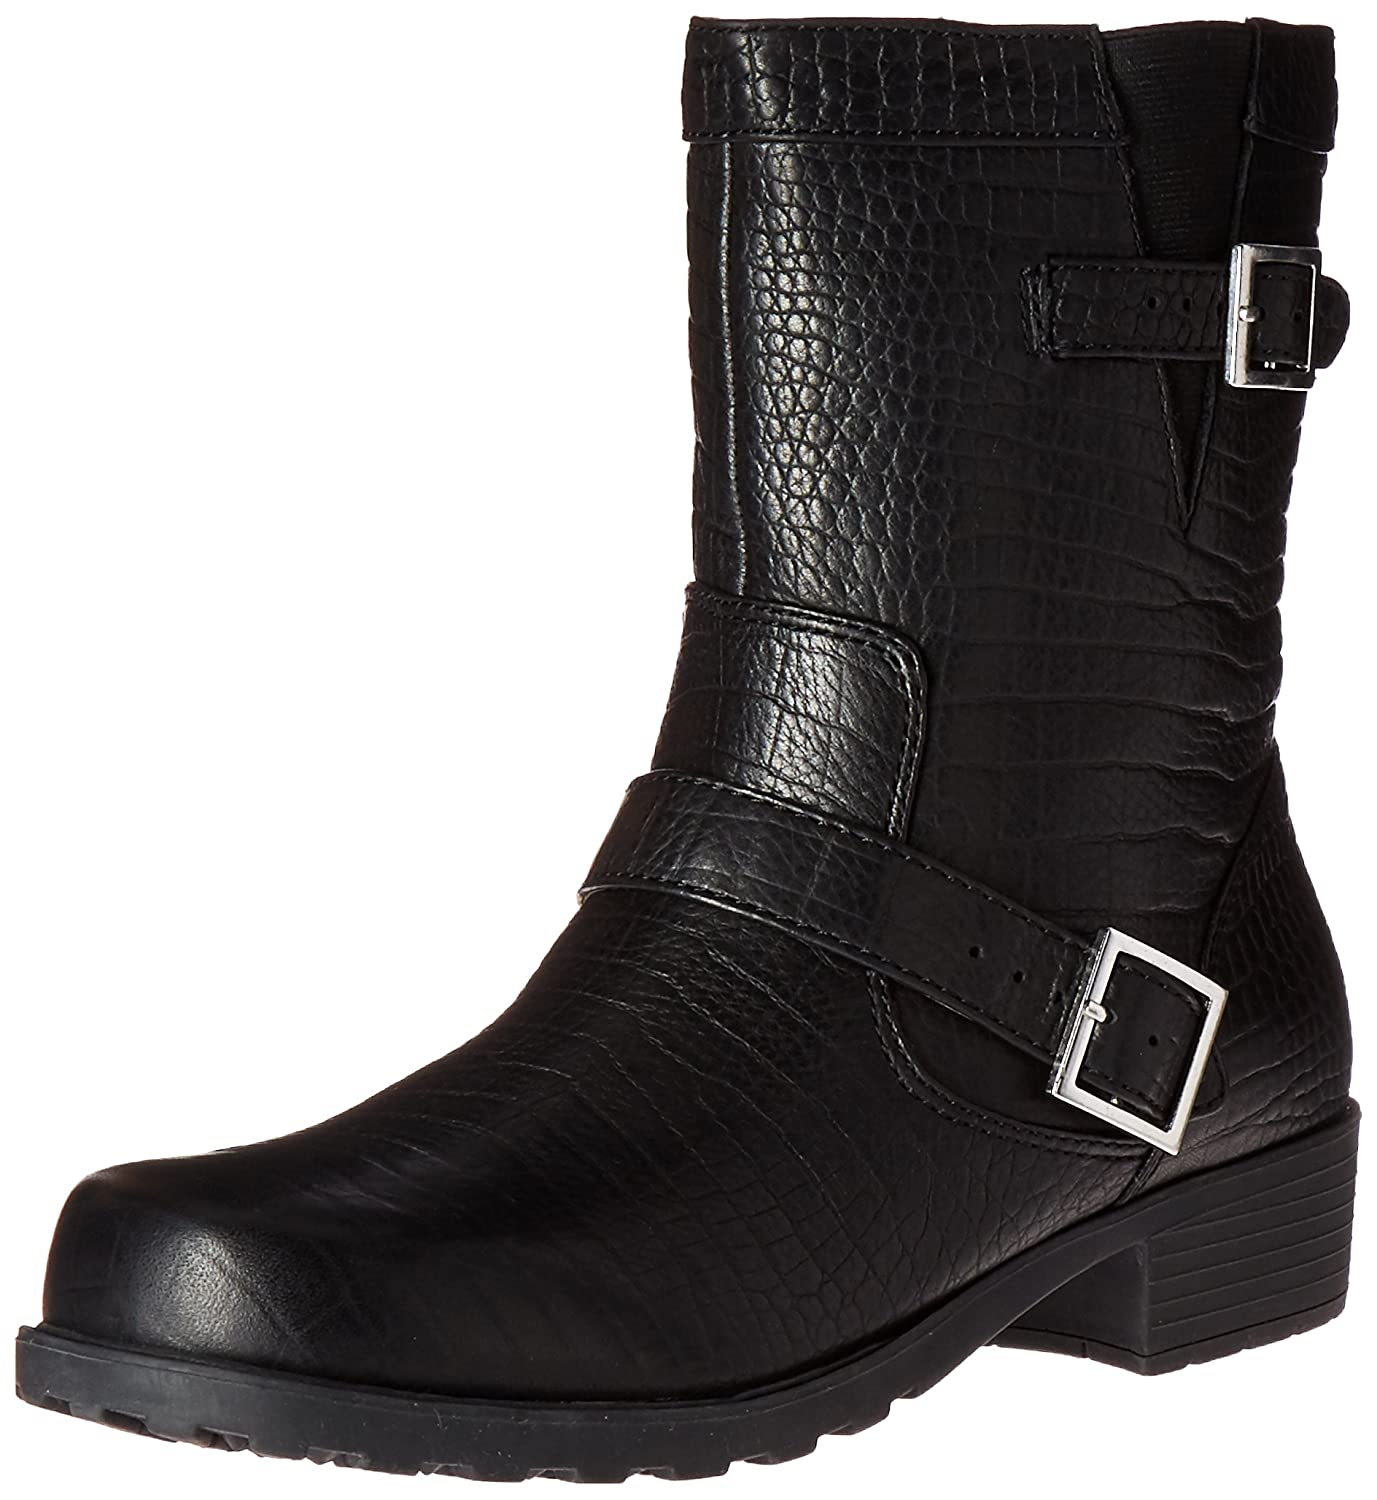 SoftWalk Women's Bellville Boot B00HQRFPY6 9 N US|Black Lizard